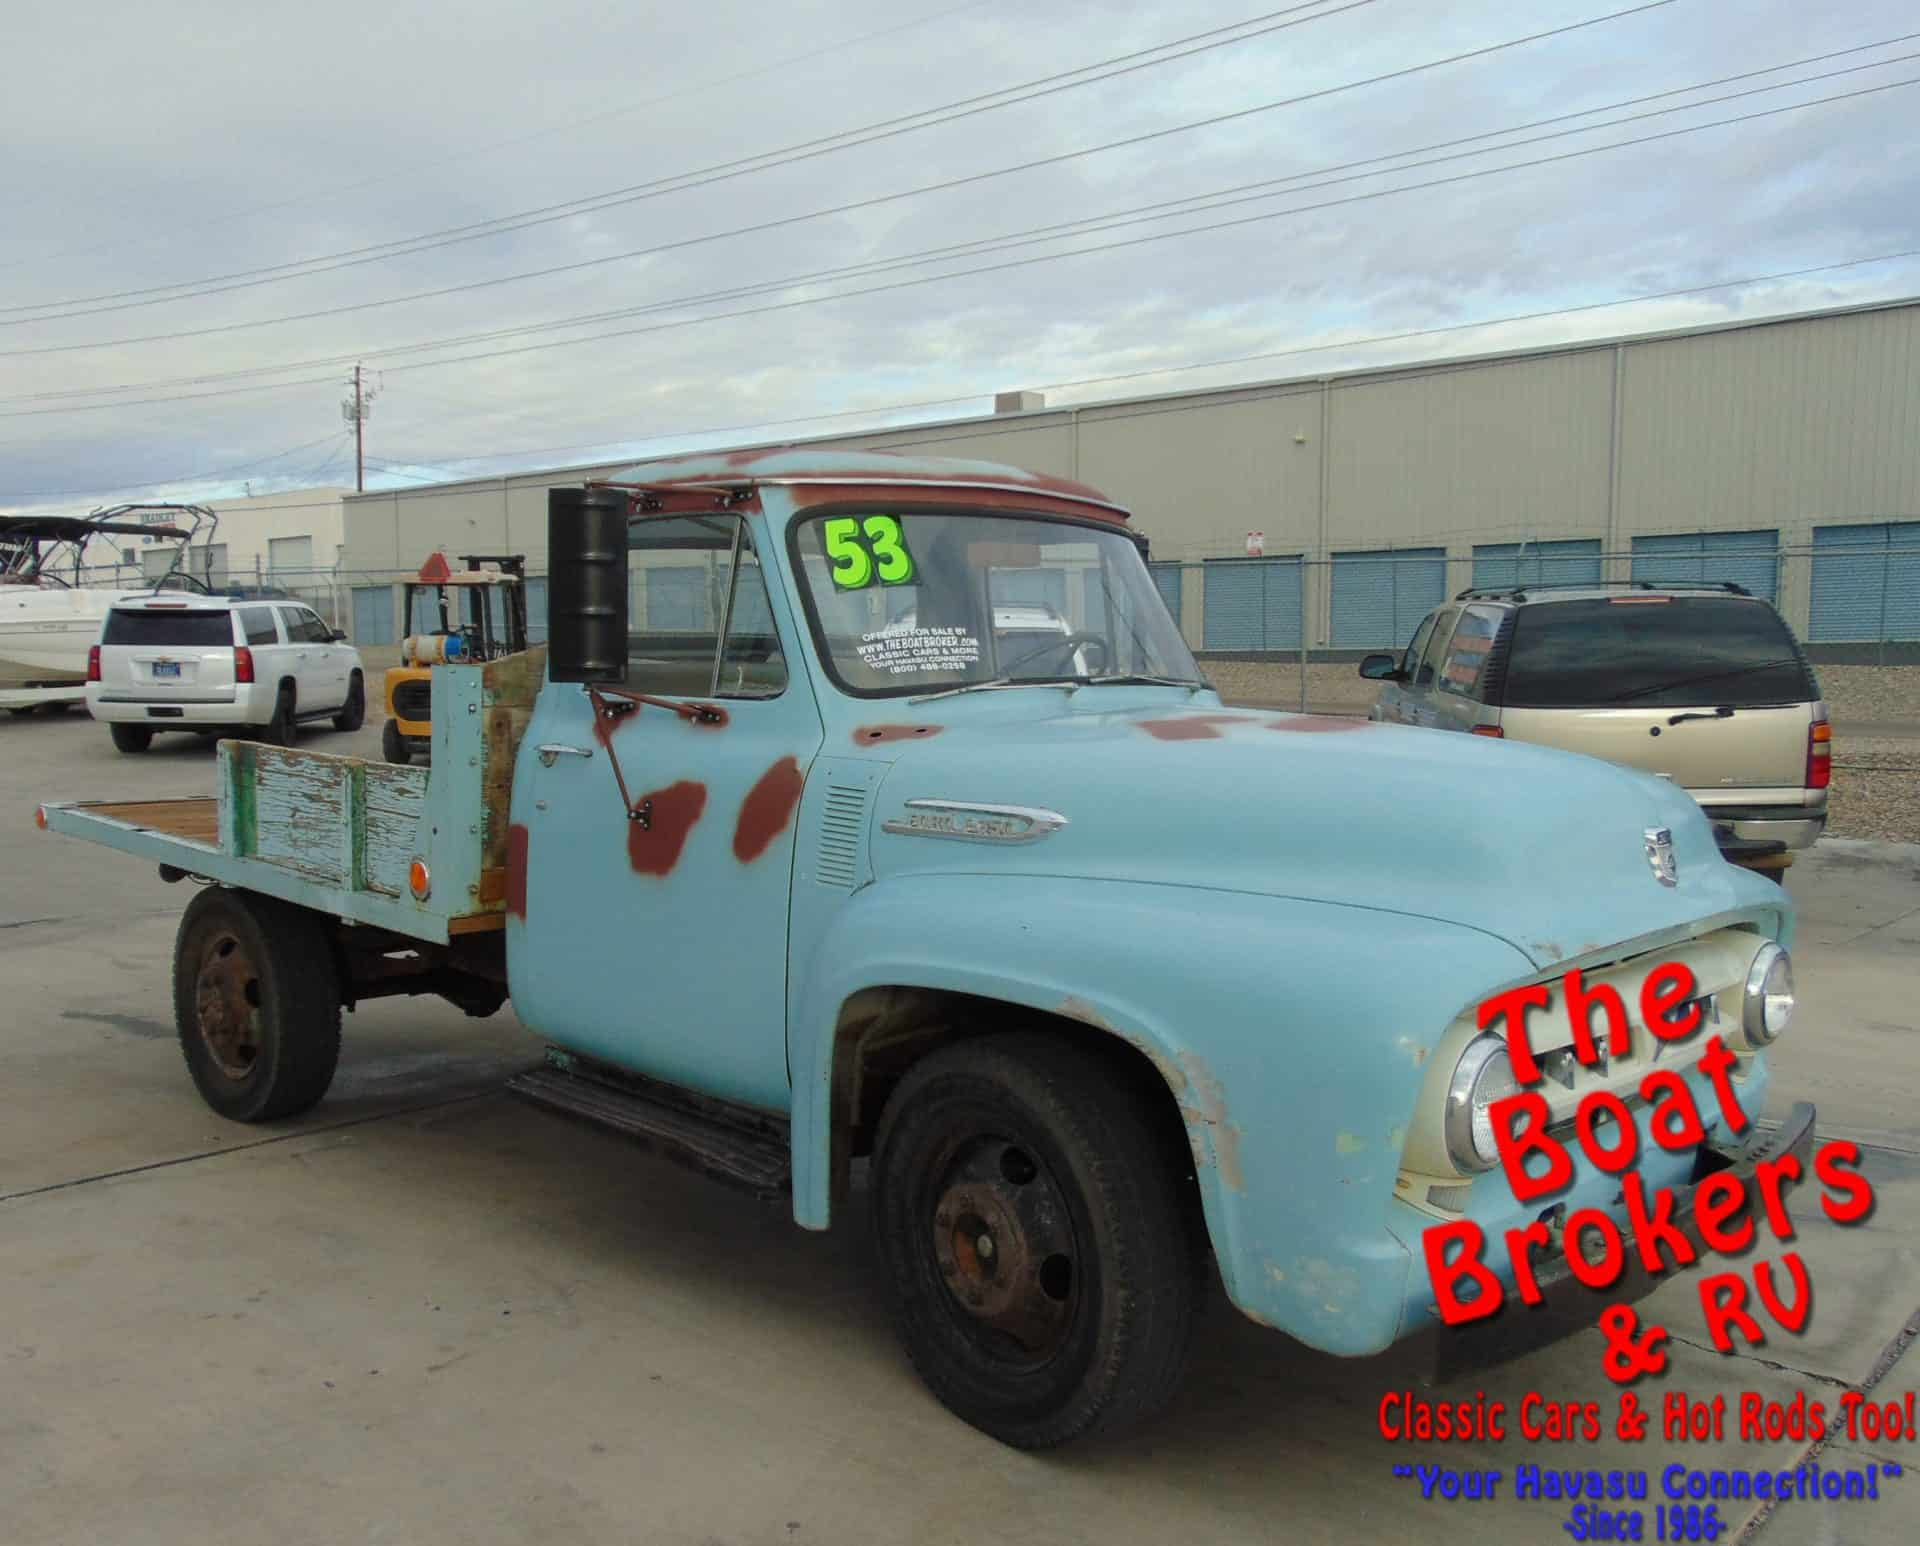 1953 ford f350 flatbed pickup new used boats rv for sale the 1953 1955 Ford Trucks 1953 ford f350 flatbed pickup stock fo3504c contact the sales team